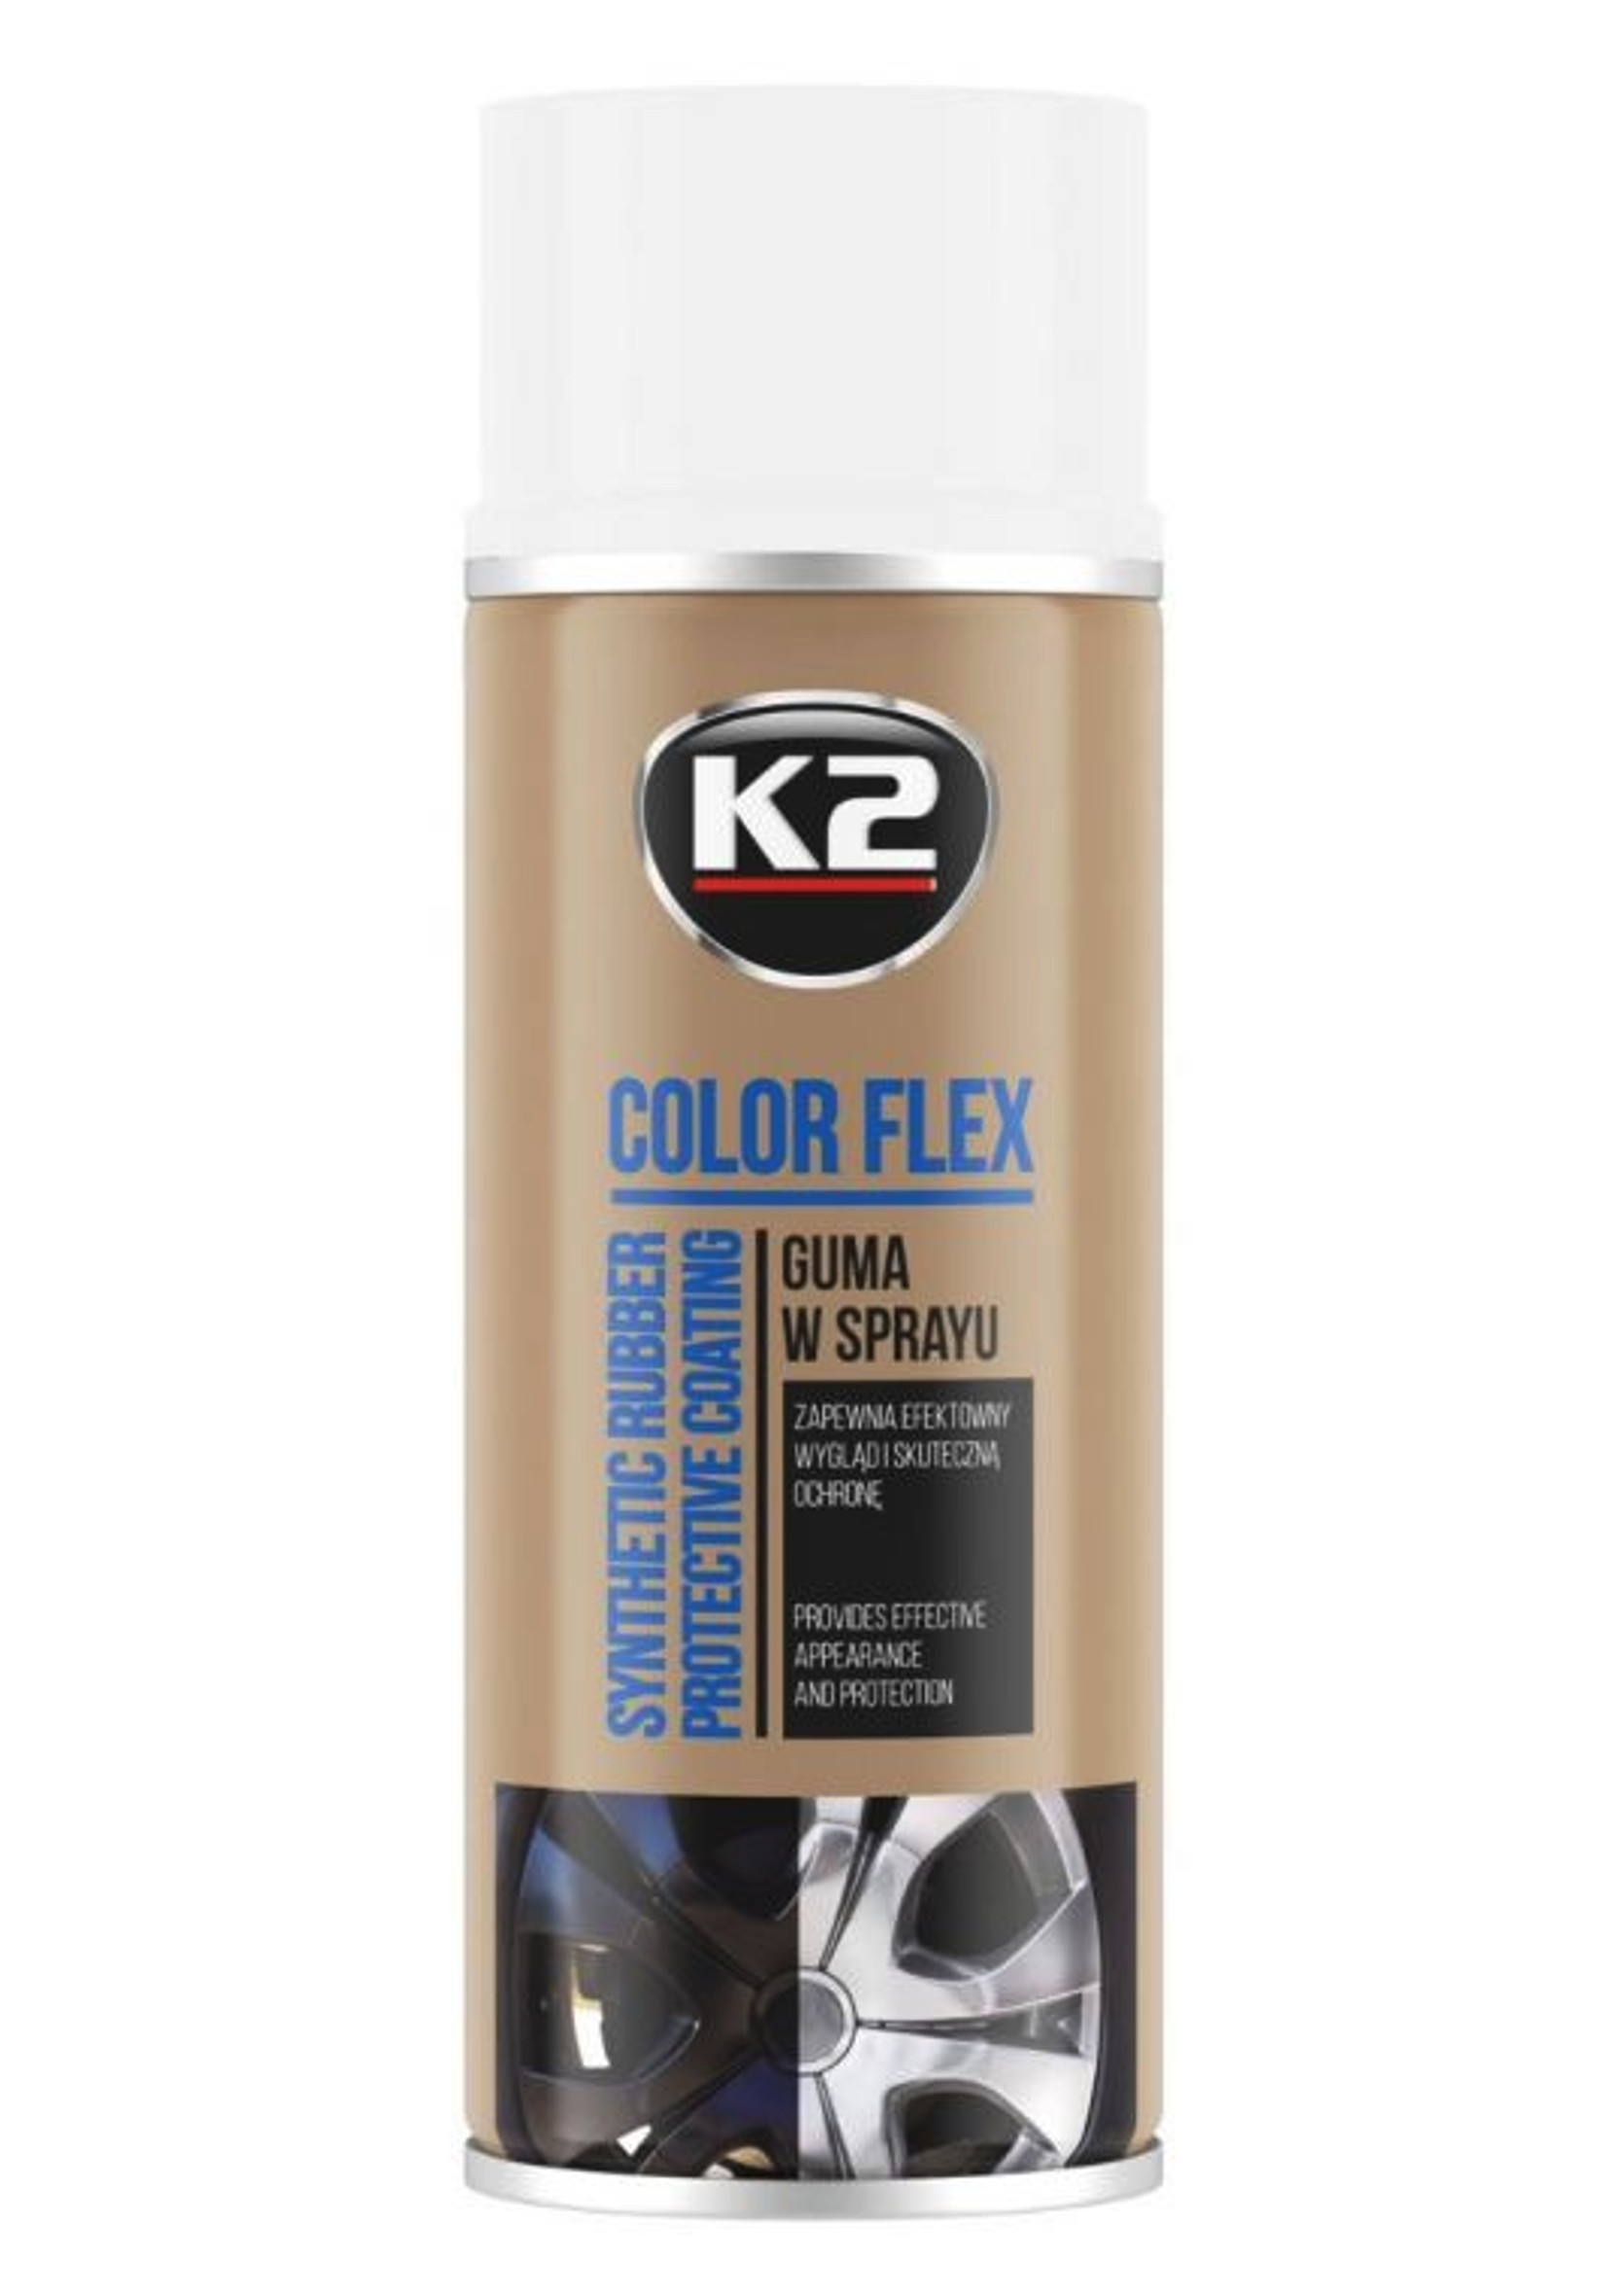 K2 Color Flex Biały 400ml Guma w Sprayu